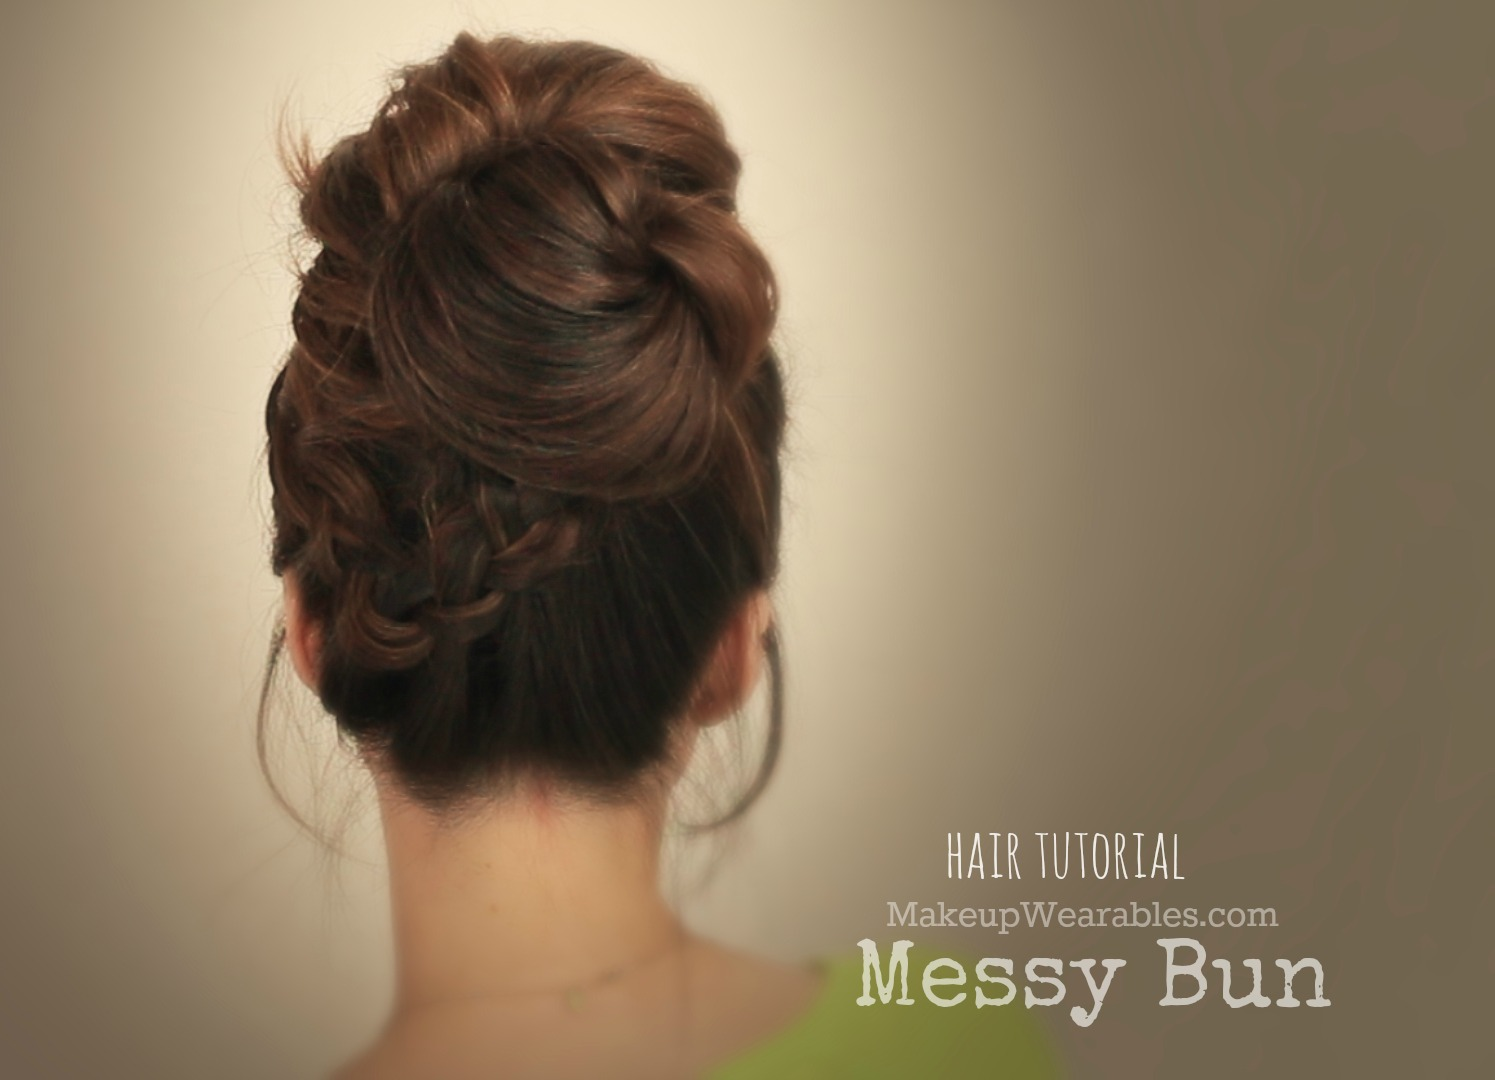 Cute Messy Bun Quick Everyday Updo Hairstyles Hair Tutorial Videos